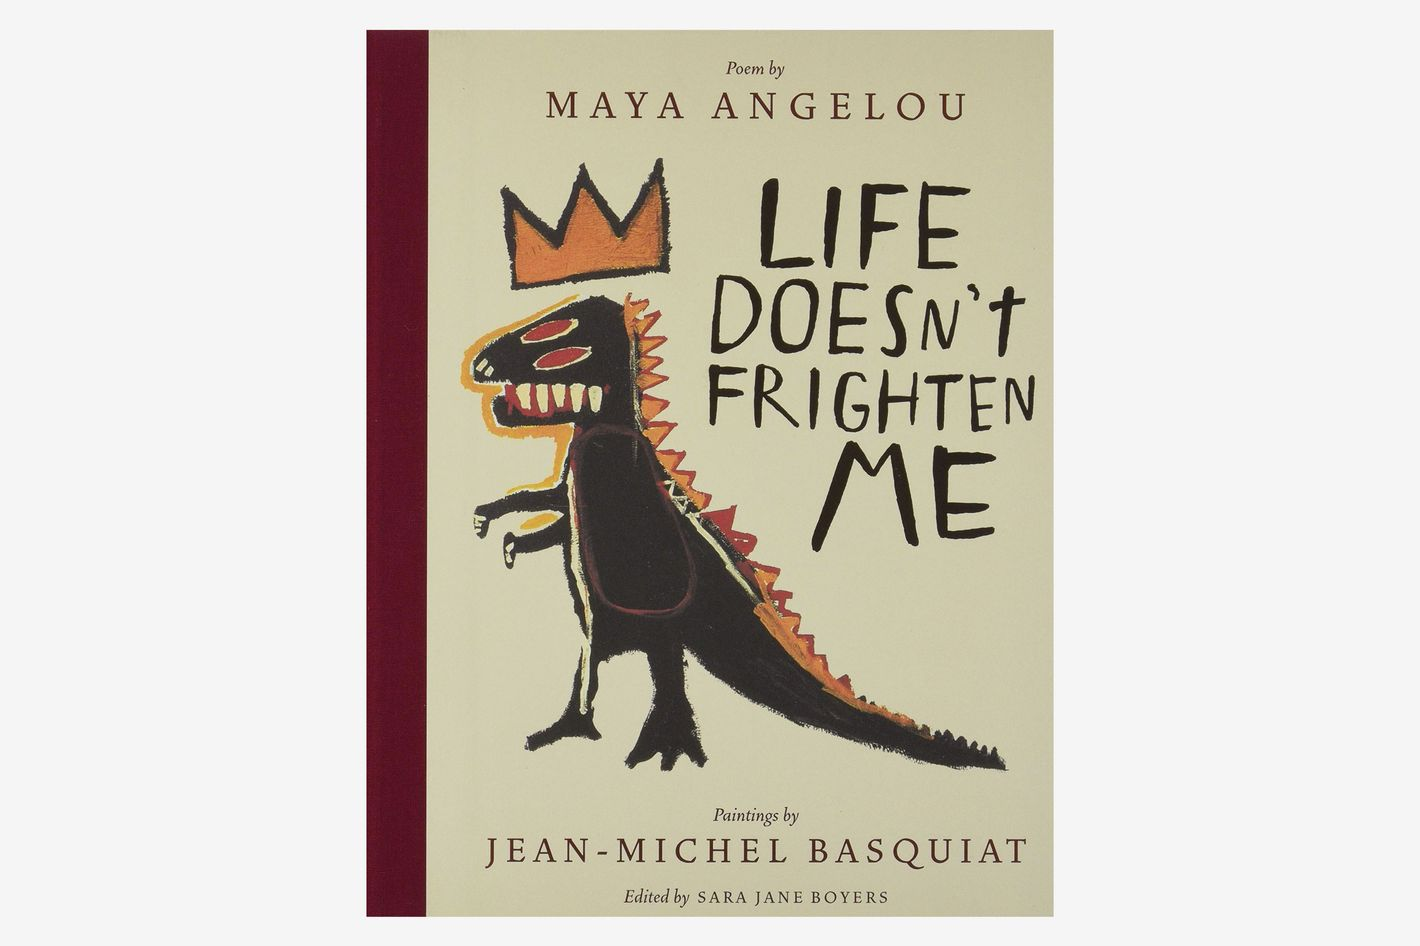 Life Doesn't Frighten Me, paintings by Jean-Michel Basquiat